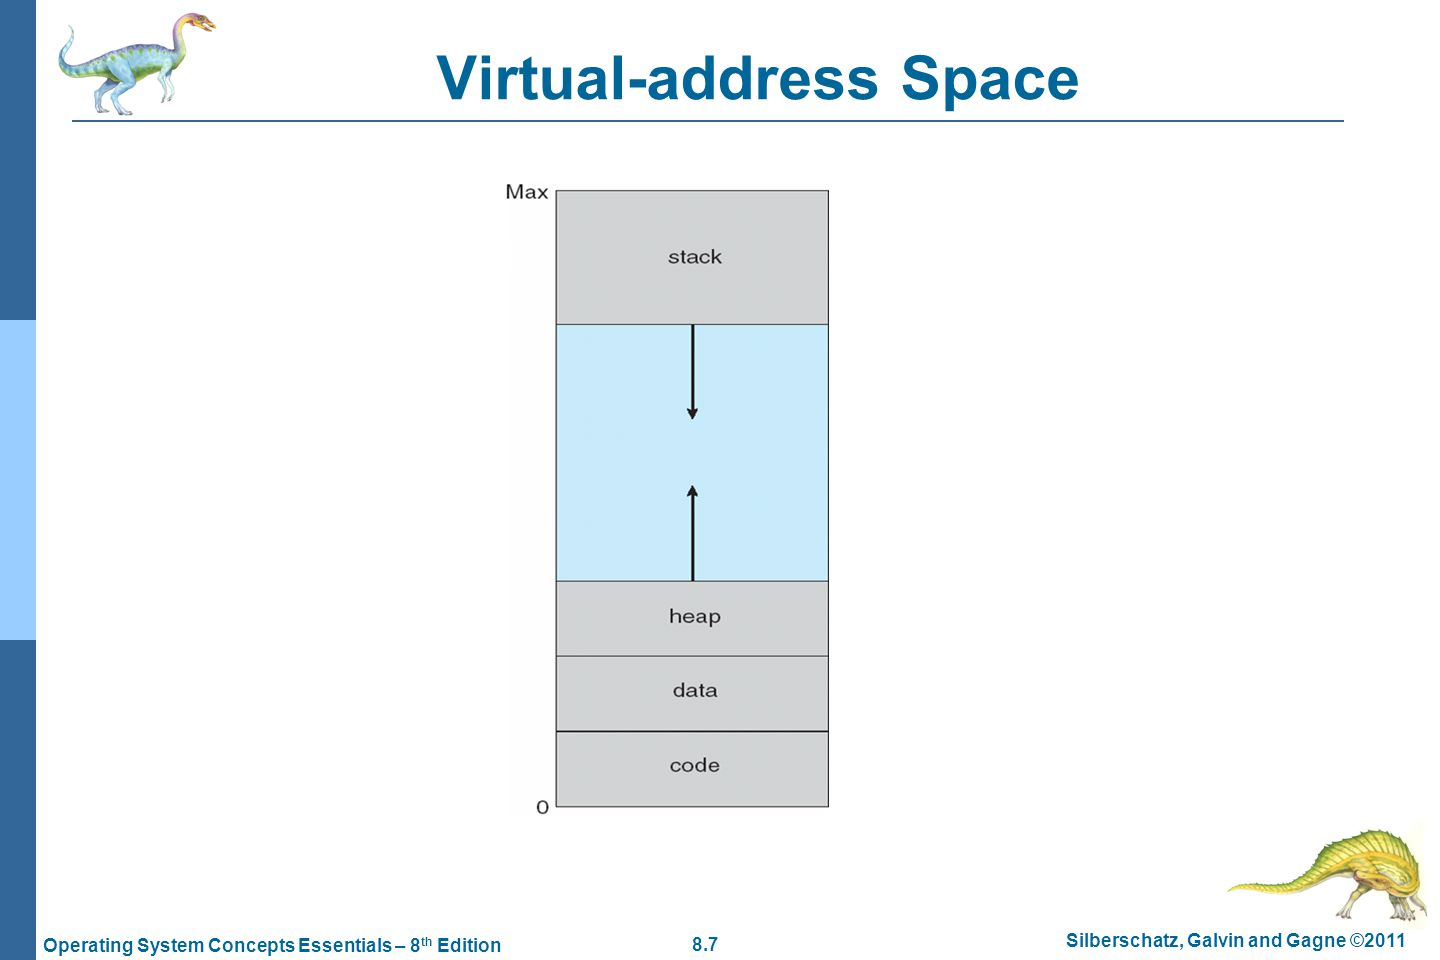 8.7 Silberschatz, Galvin and Gagne ©2011 Operating System Concepts Essentials – 8 th Edition Virtual-address Space